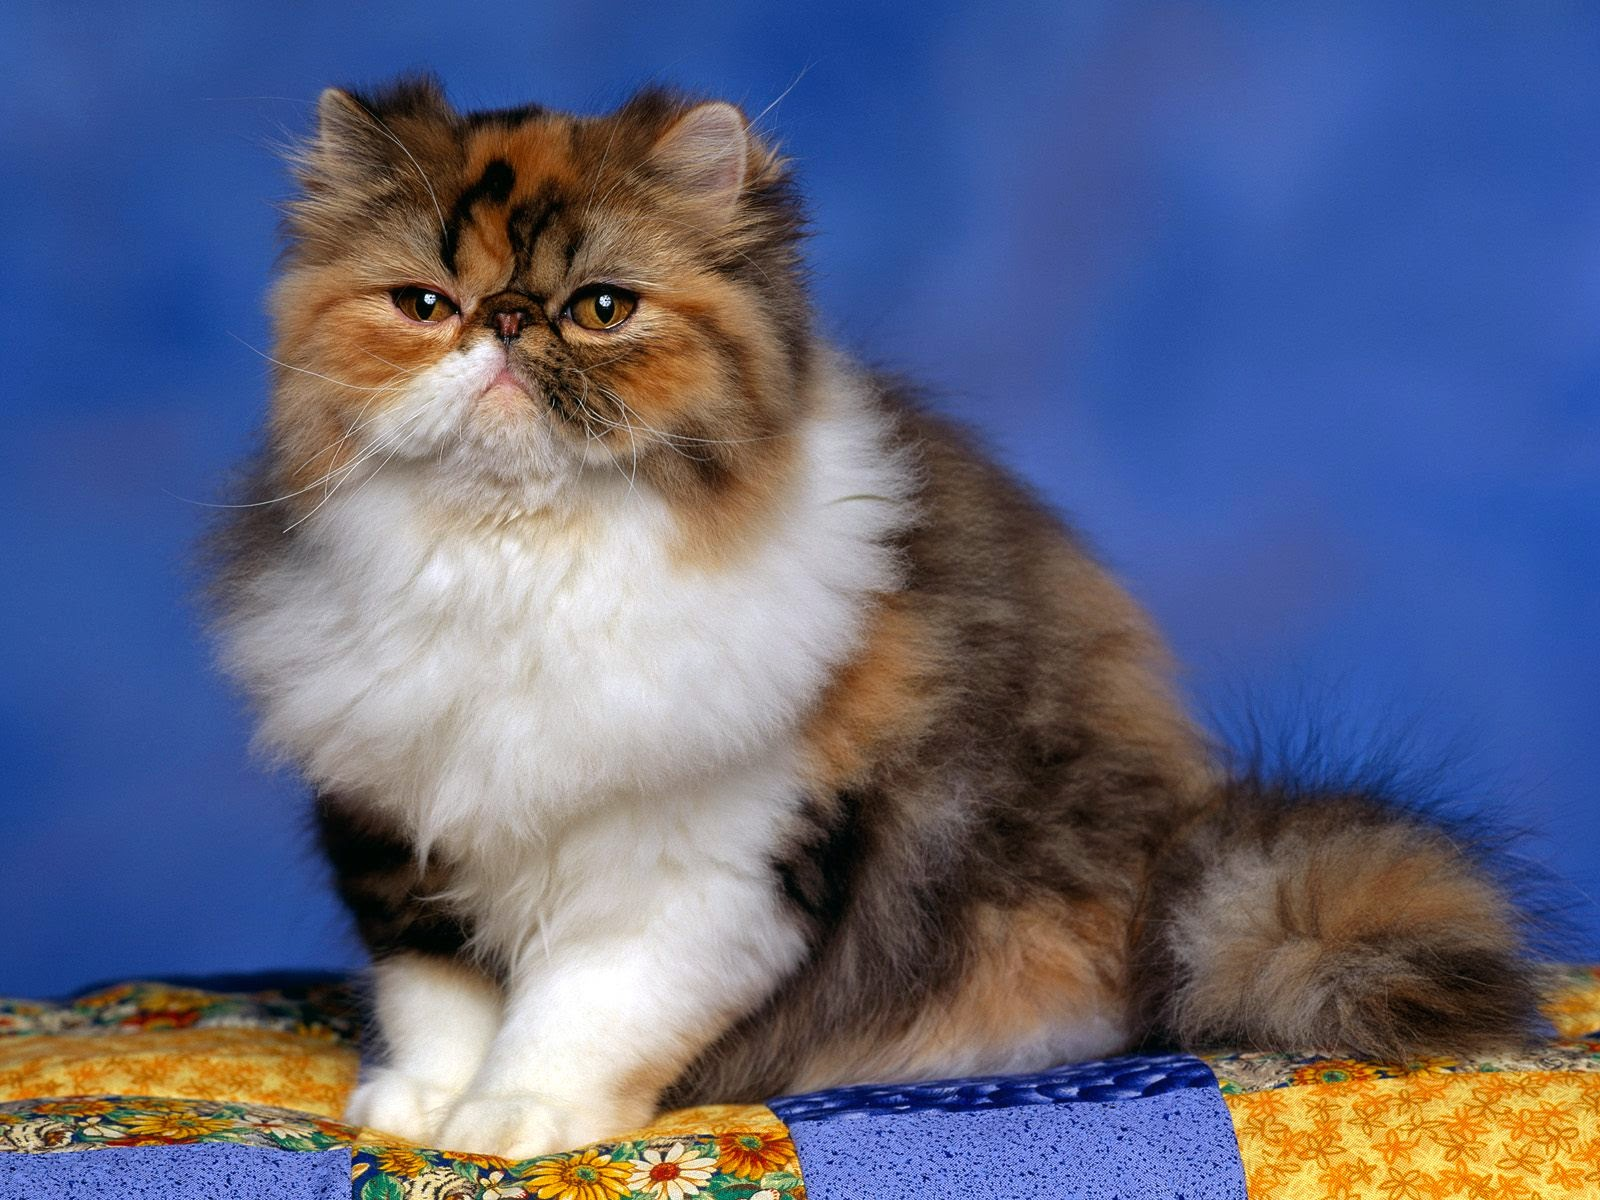 persian calico kitten wallpapers - Cute Persian Calico Kitten Wallpapers HD Wallpapers